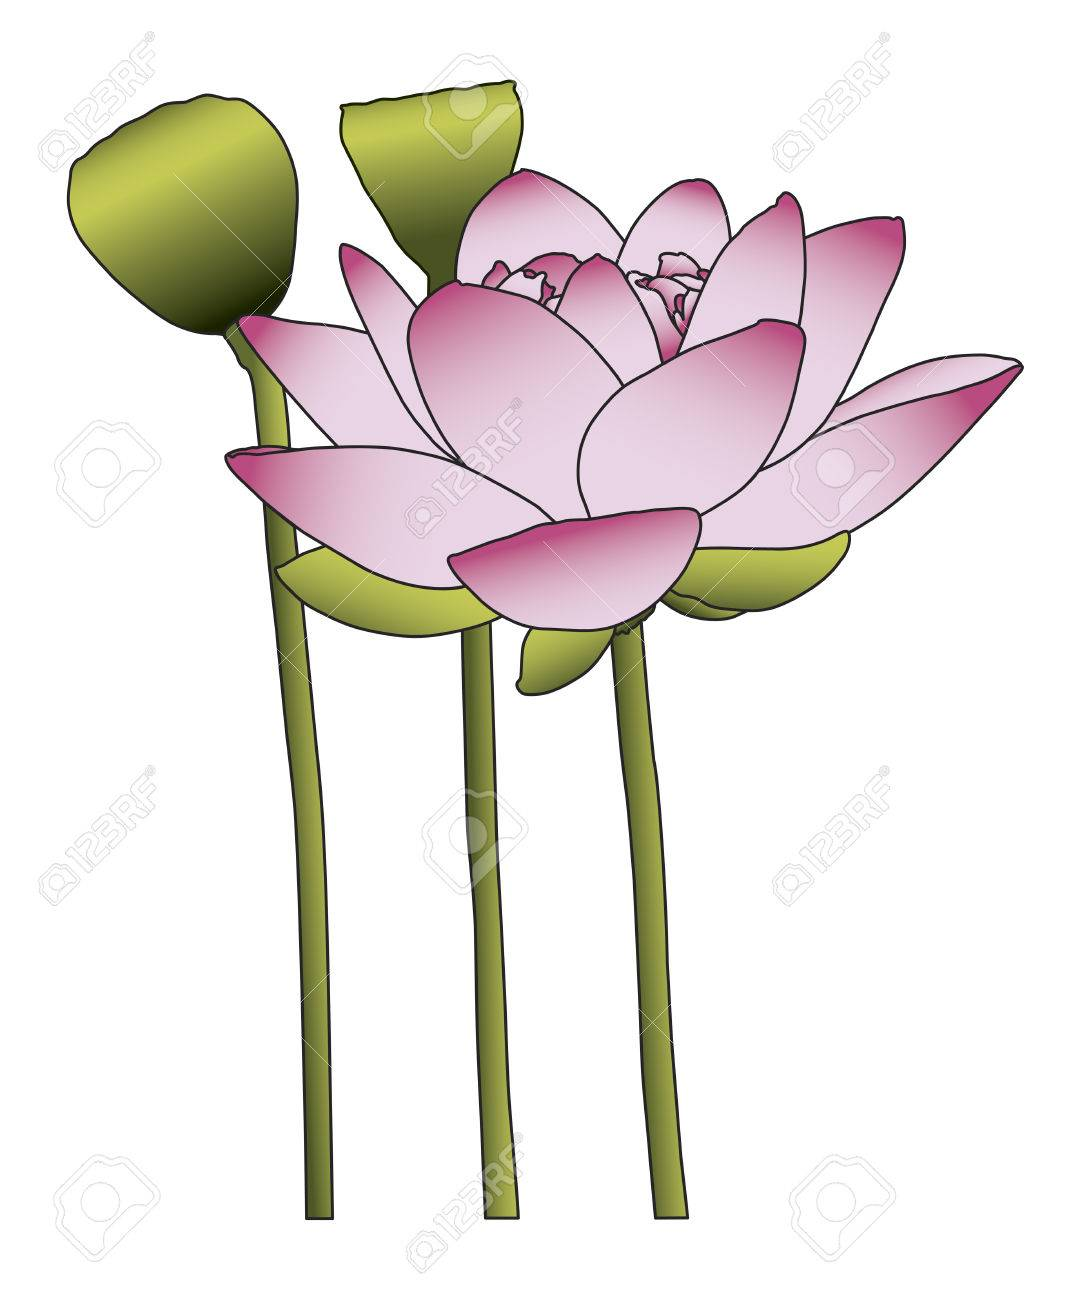 large pink lotus flower on white background royalty free cliparts